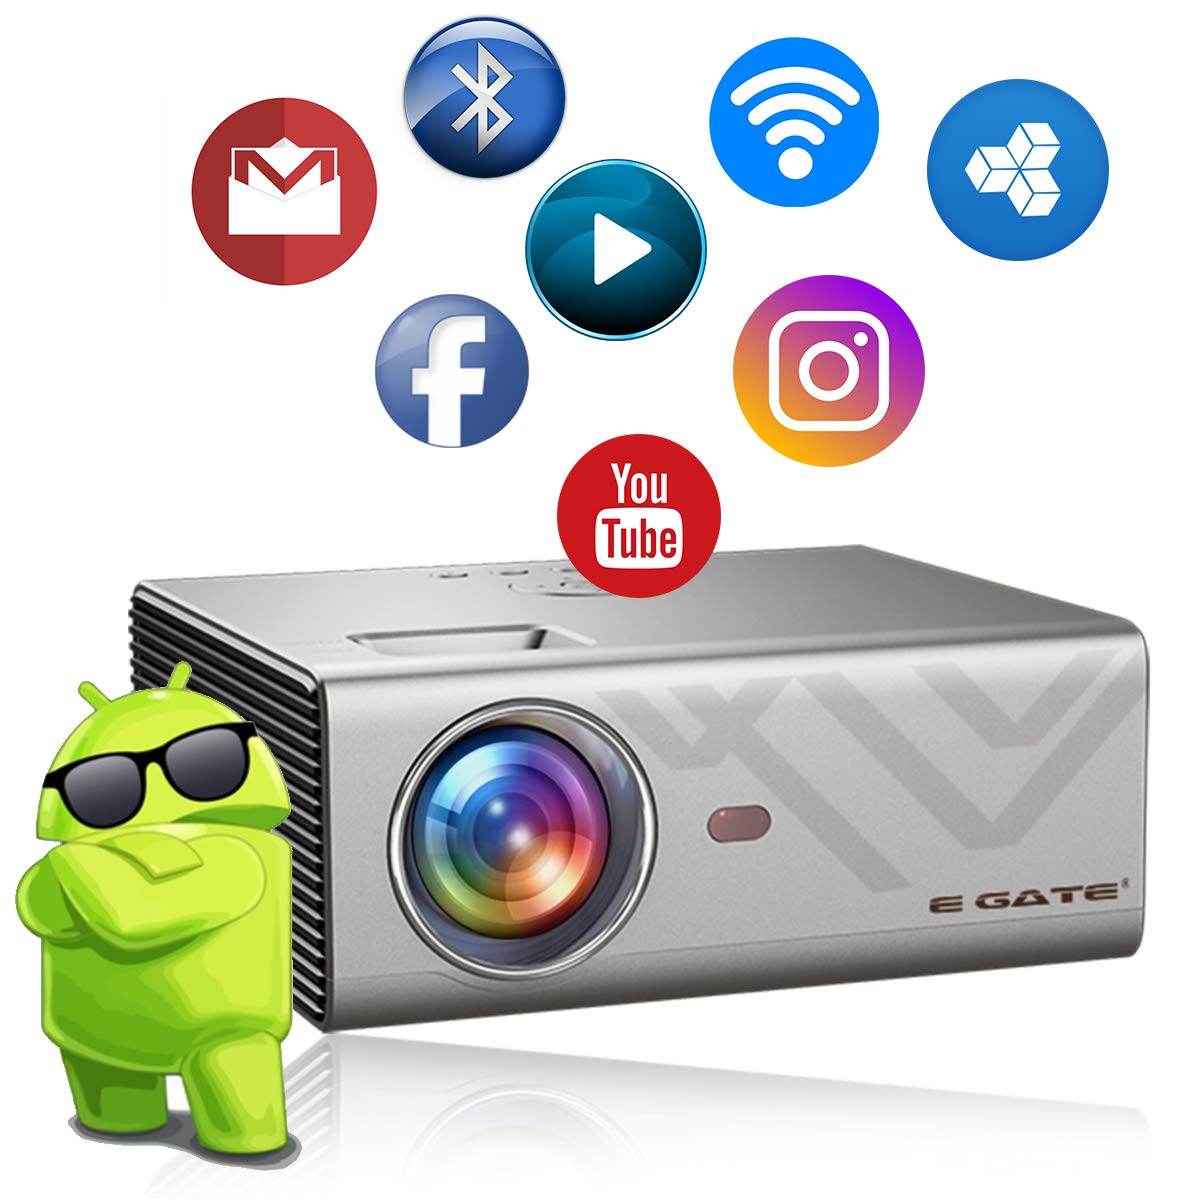 Egate K9 Android LED 720p 2400 Lumens HD Projector with 4D